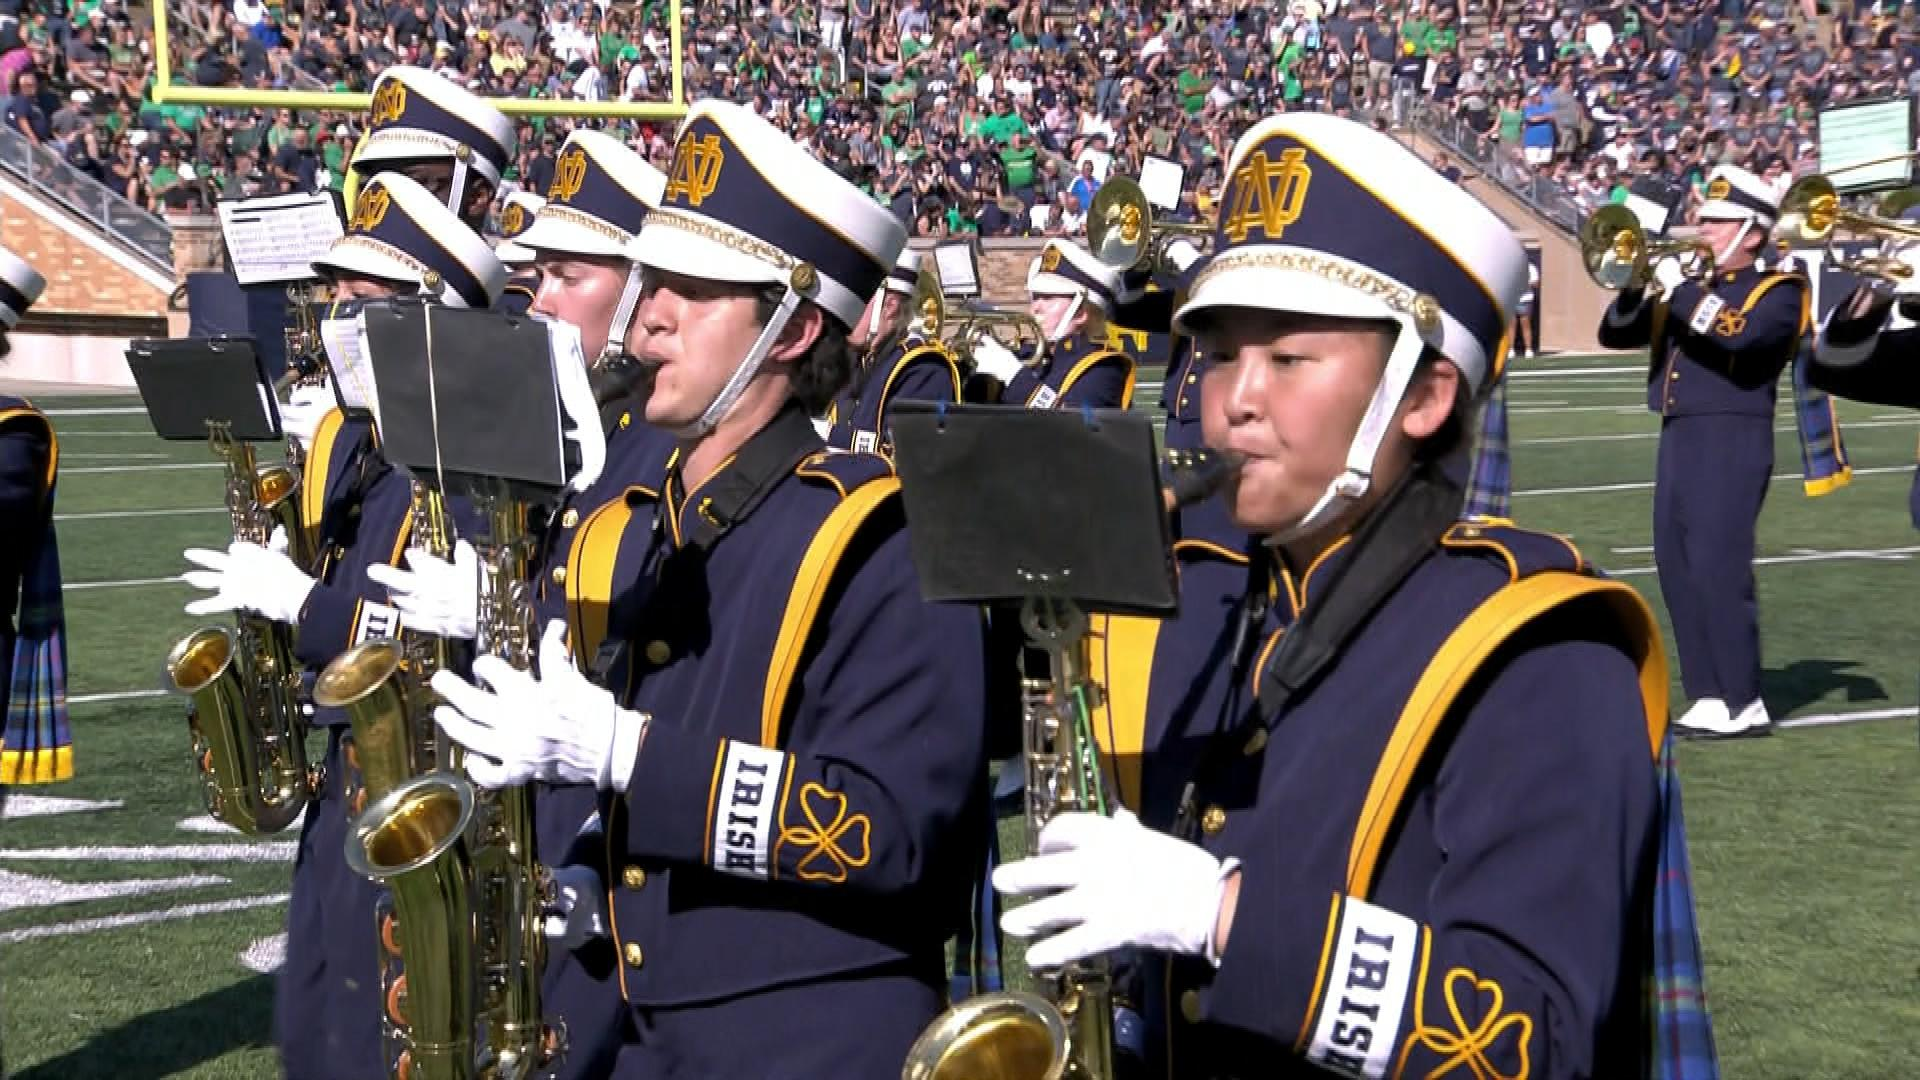 Notre Dame band plays summer pop hits in New Mexico halftime